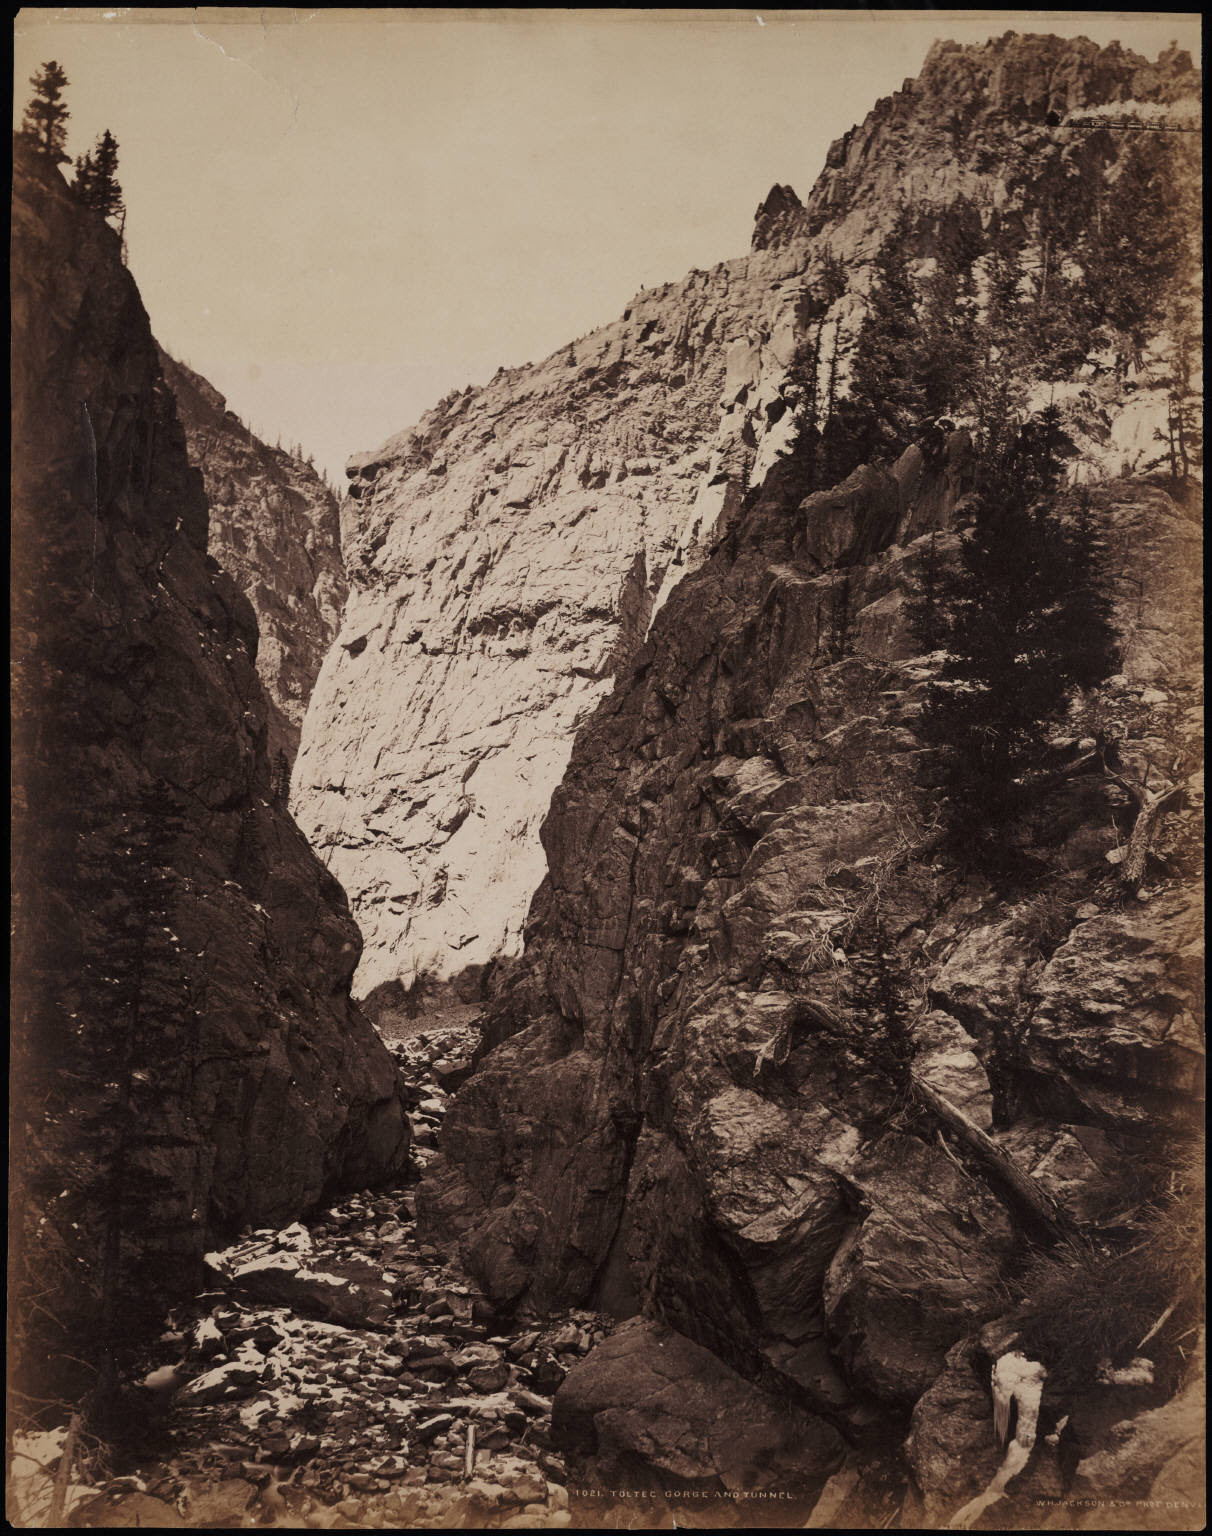 [No. 1021. Rio de los Pinos, (Rio San Antonio) and rock formations in the Toltec Gorge, Rio Arriba County, New Mexico. Shows a Denver and Rio Grande Railroad train near the Toltec tunnel high on the rock cliff].